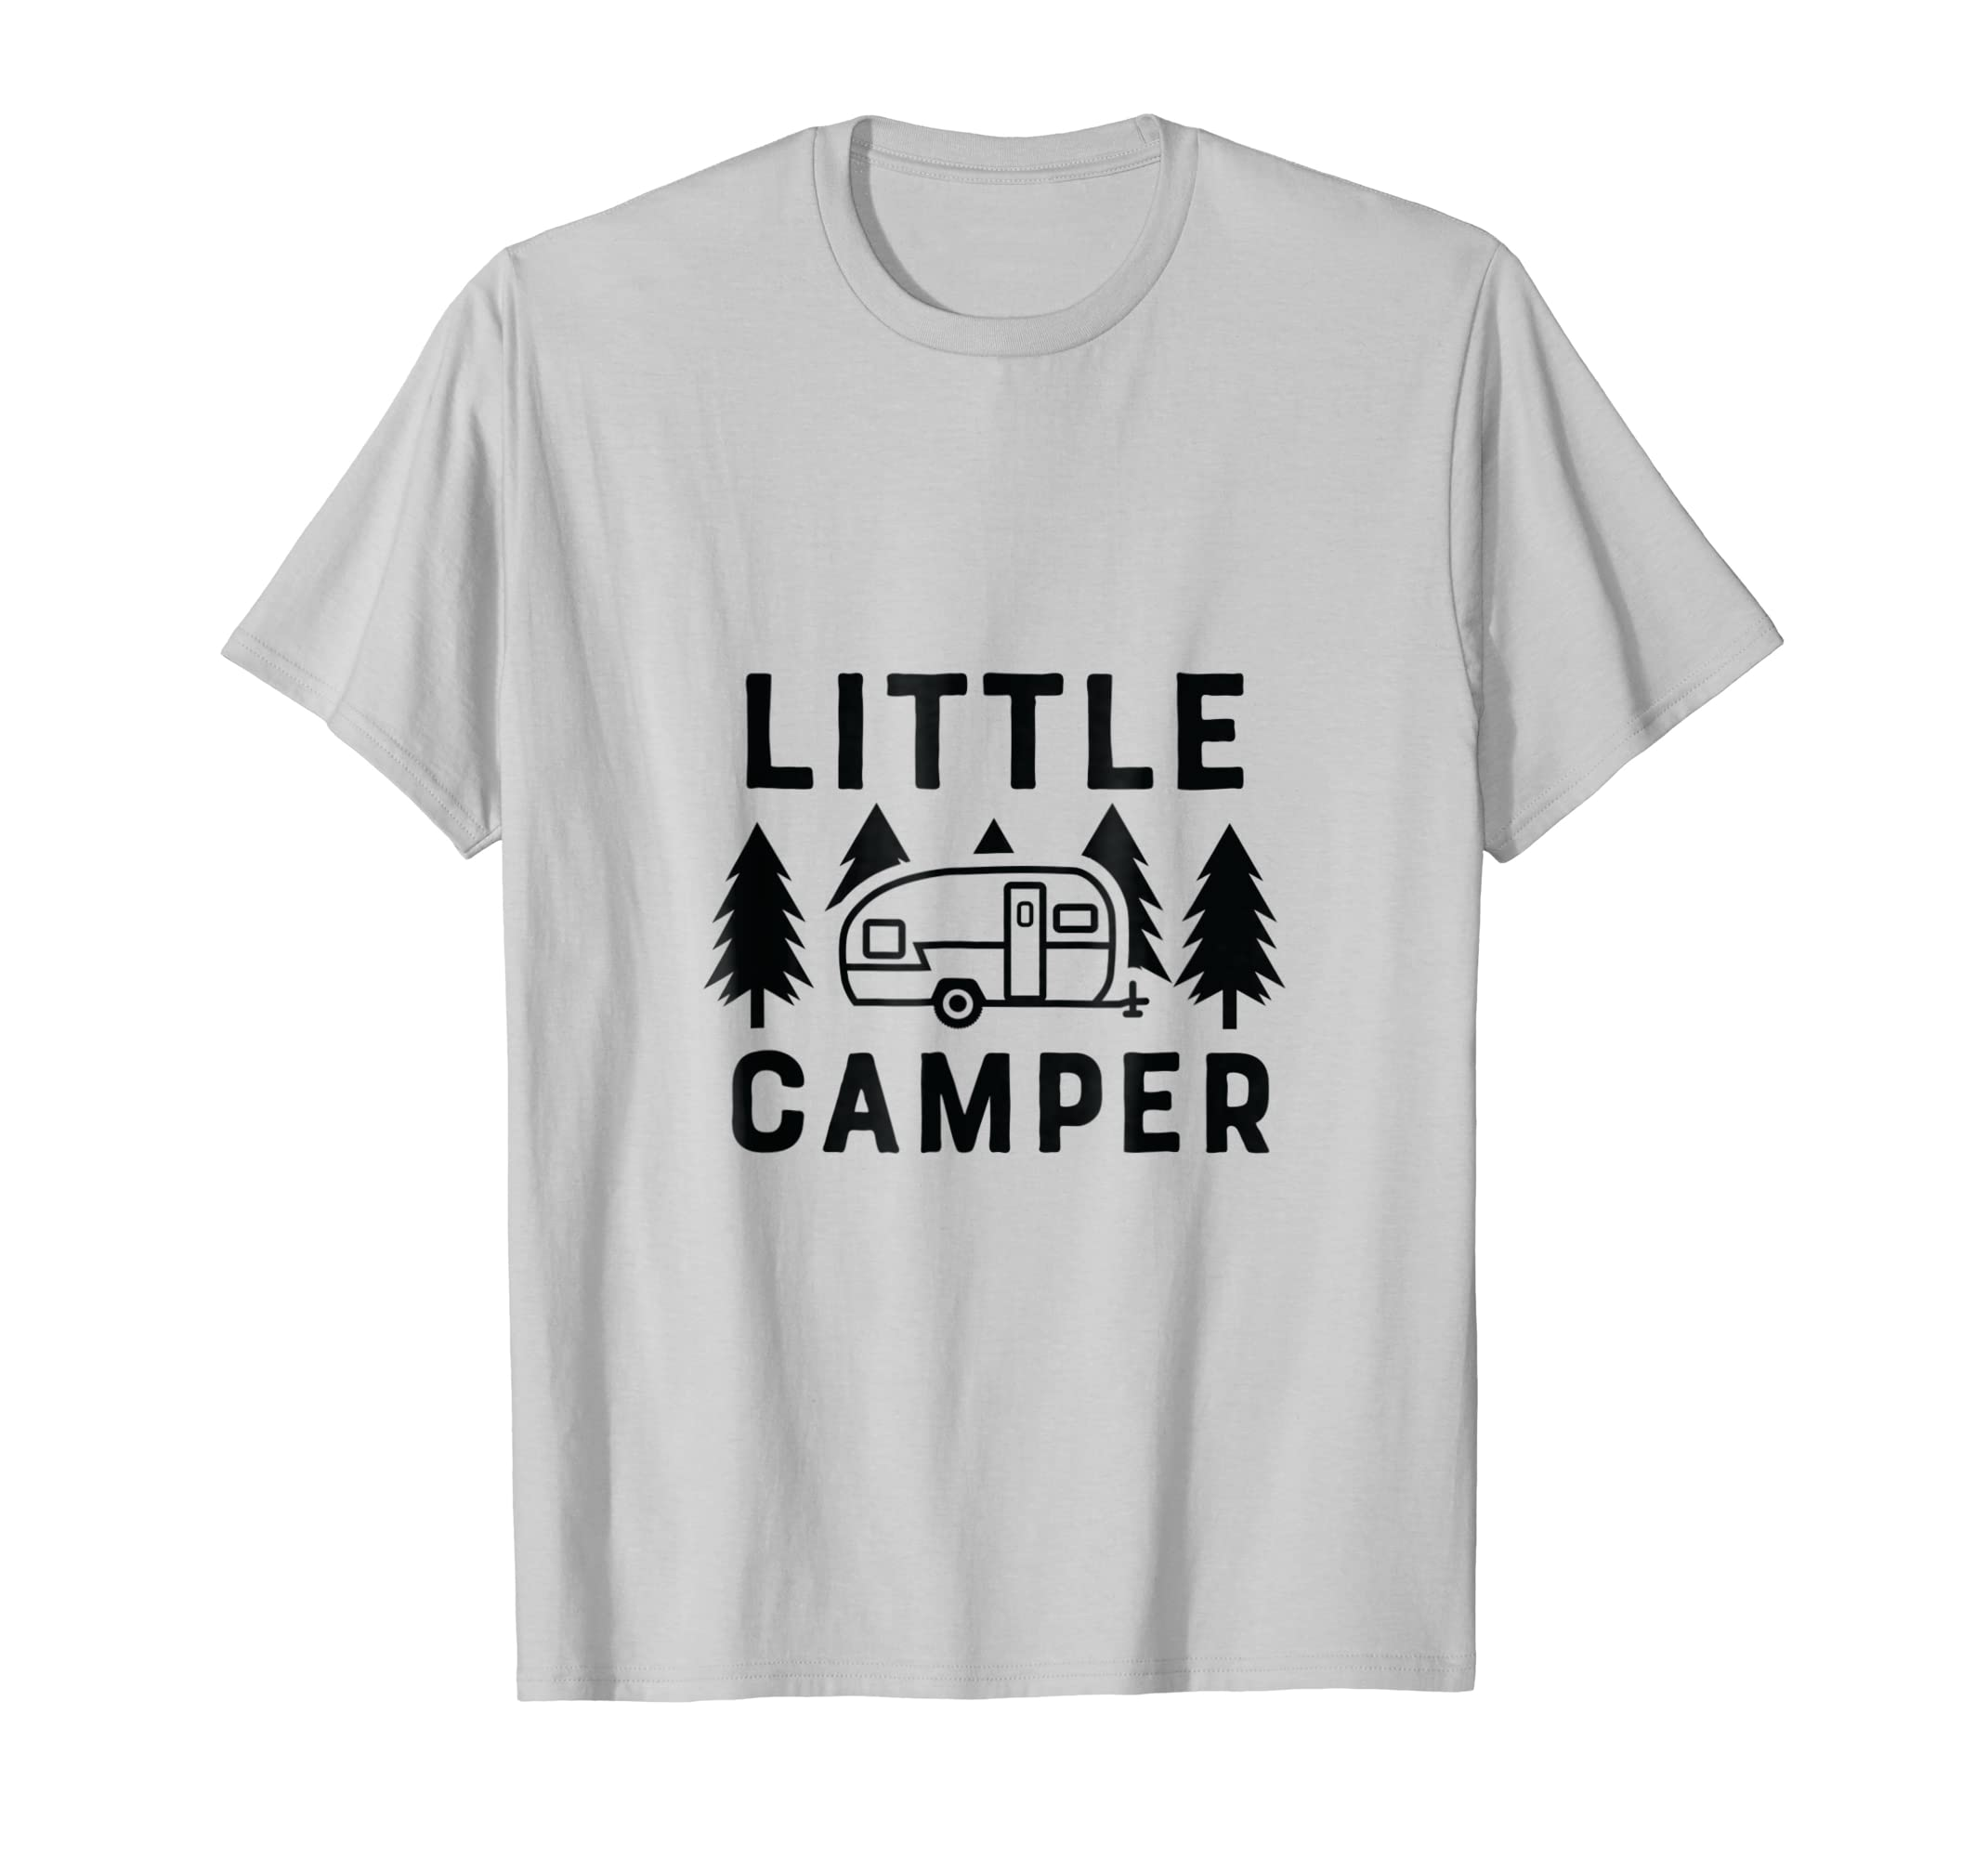 059ca690c Amazon.com: Little Camper Cute Graphics Tee Shirt for Kids Boys Girls:  Clothing